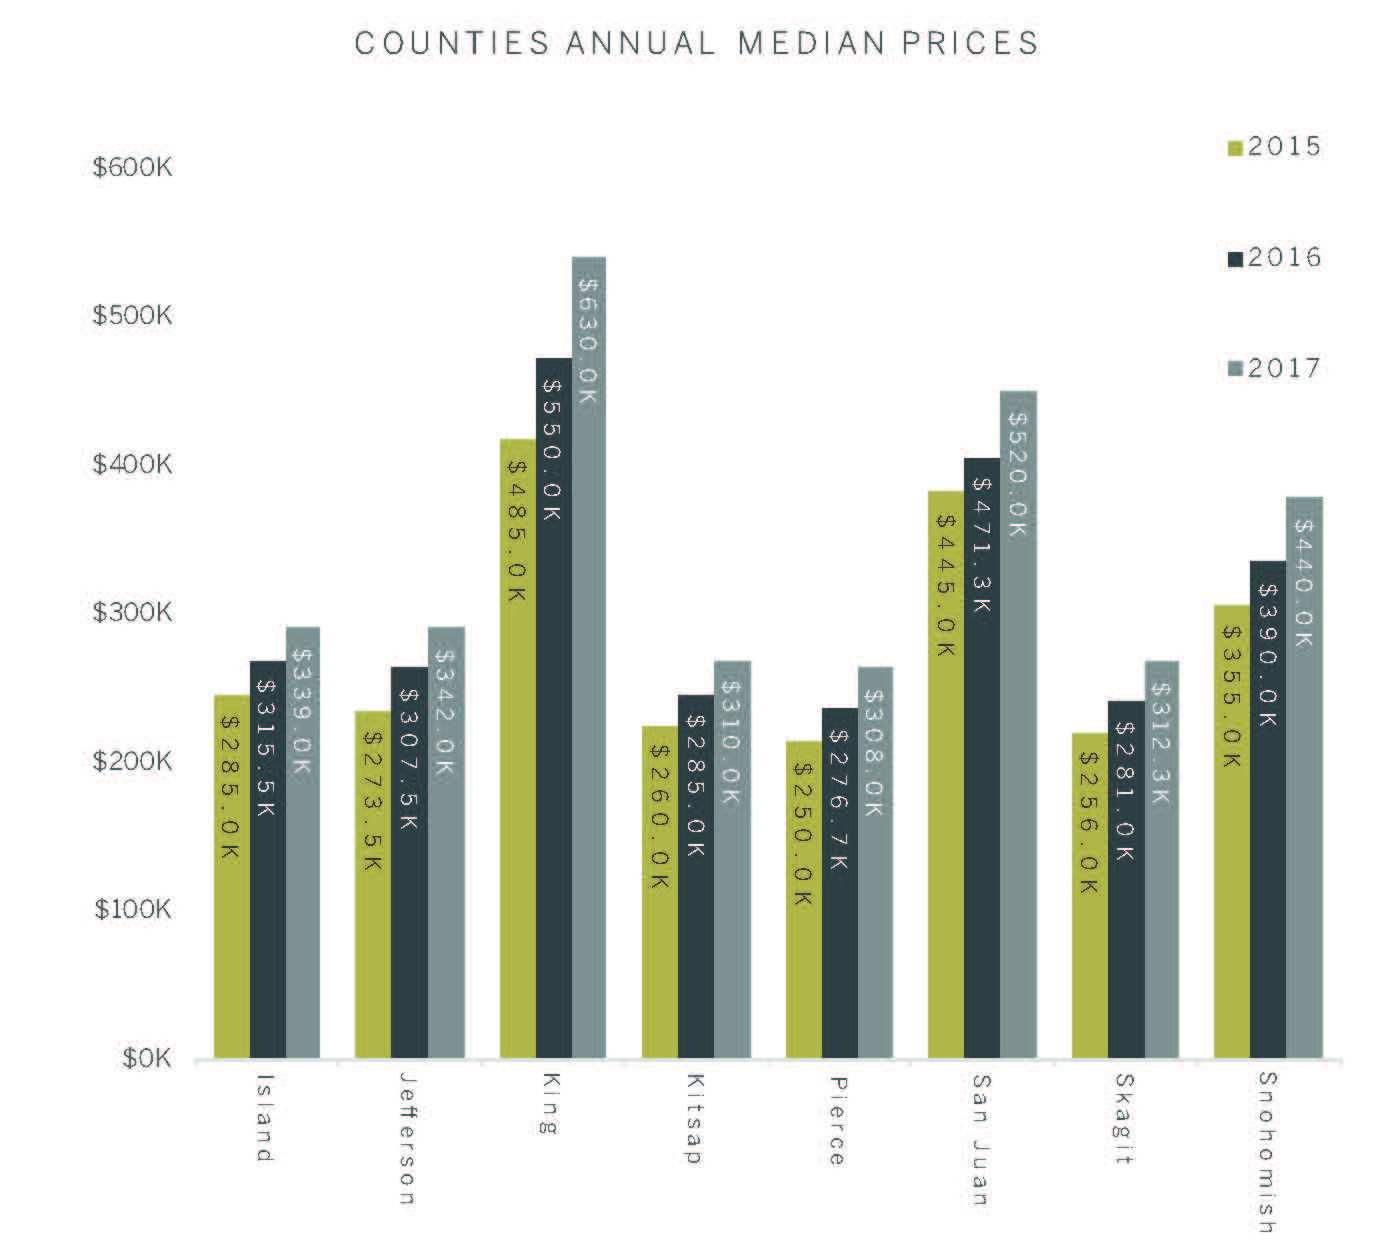 counties.annual.median.prices.jpg